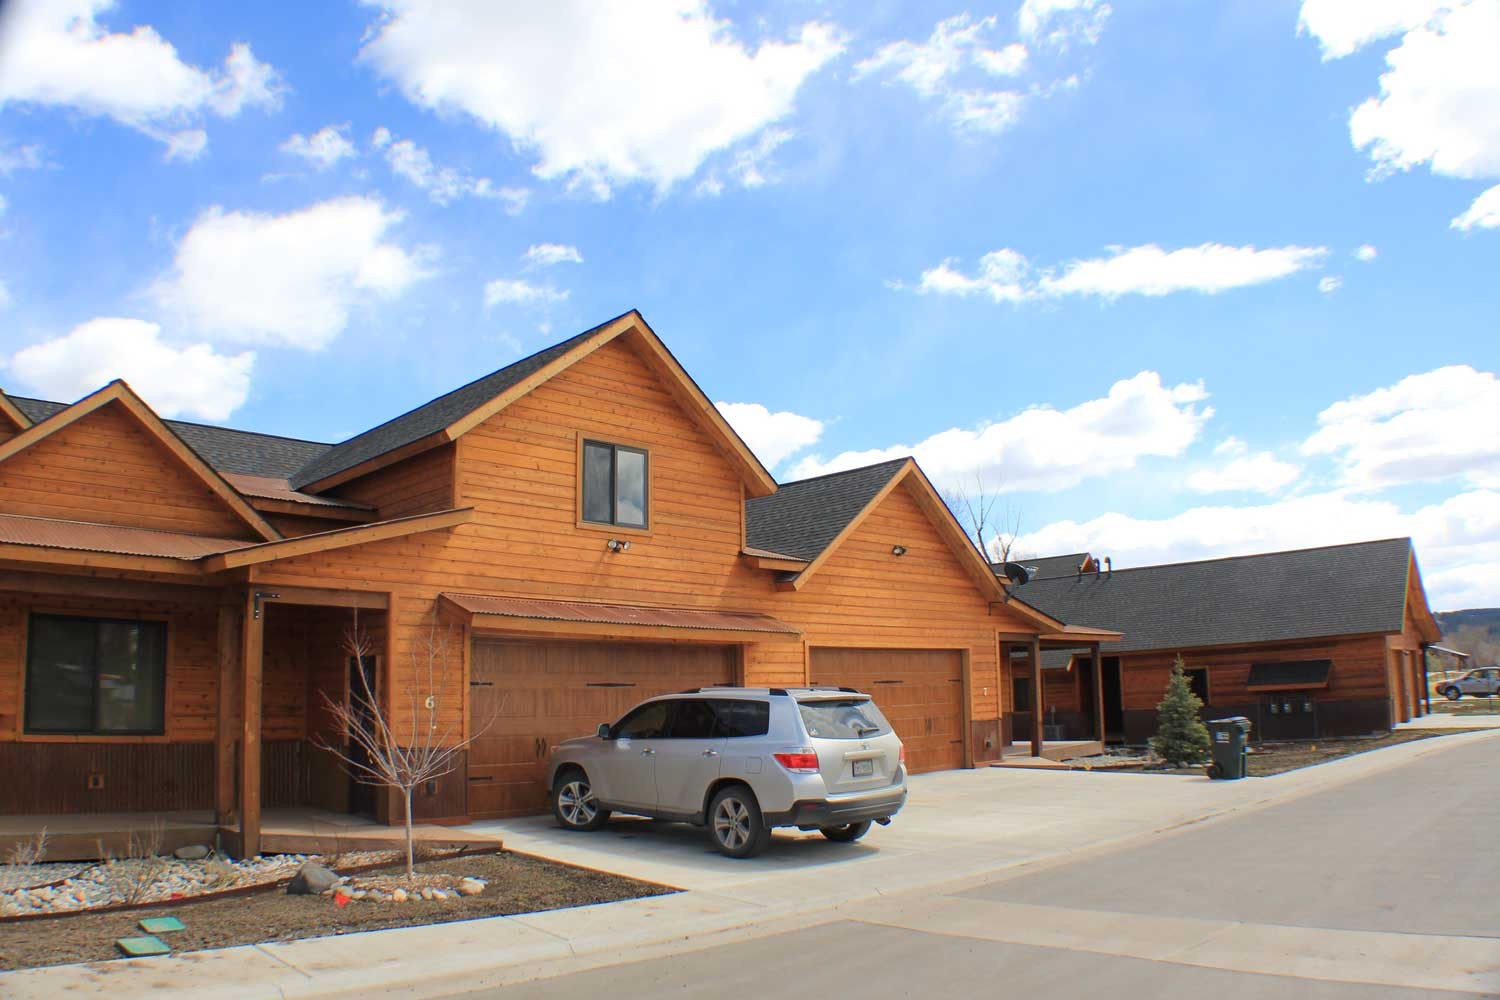 Cobblestone Townhome Community in Pagosa Springs Colorado built by BWD Construction